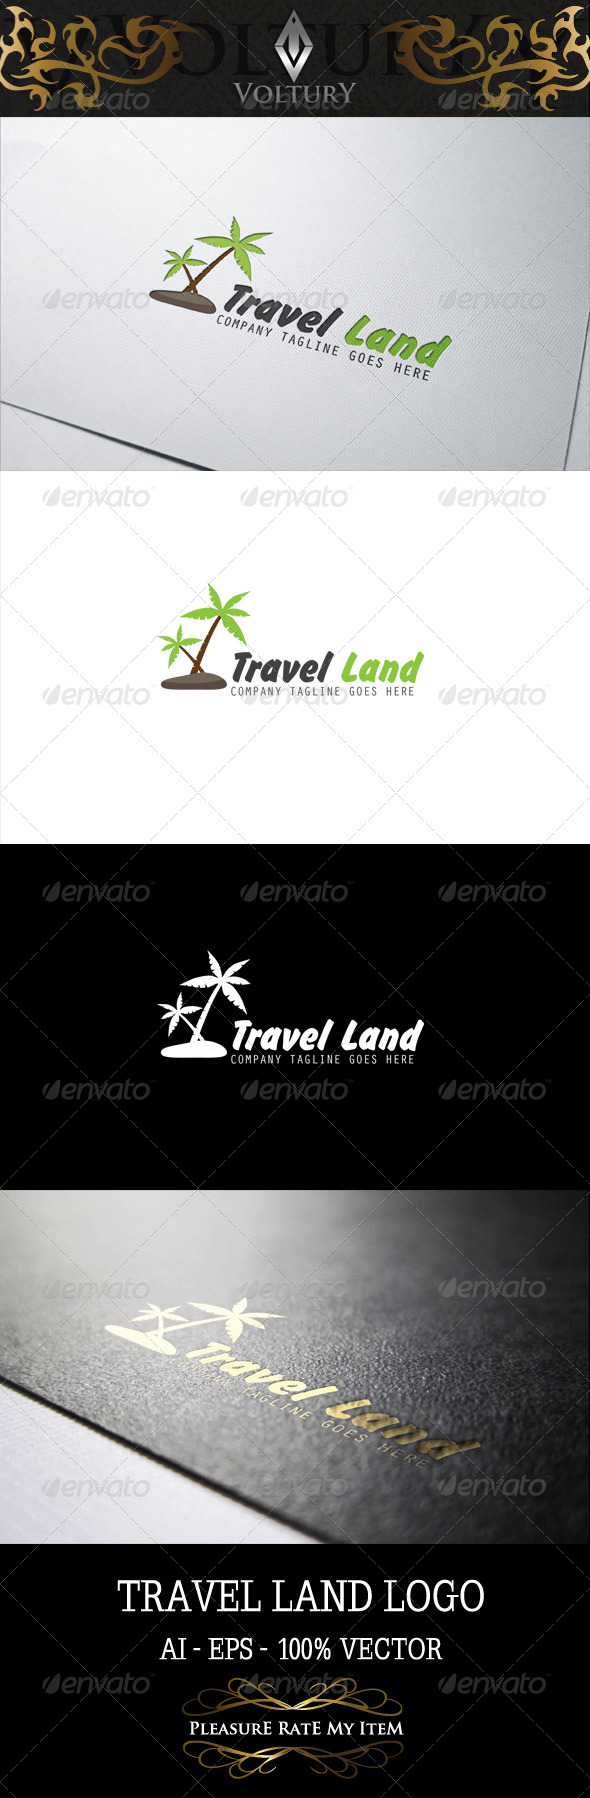 Travel Land Logo